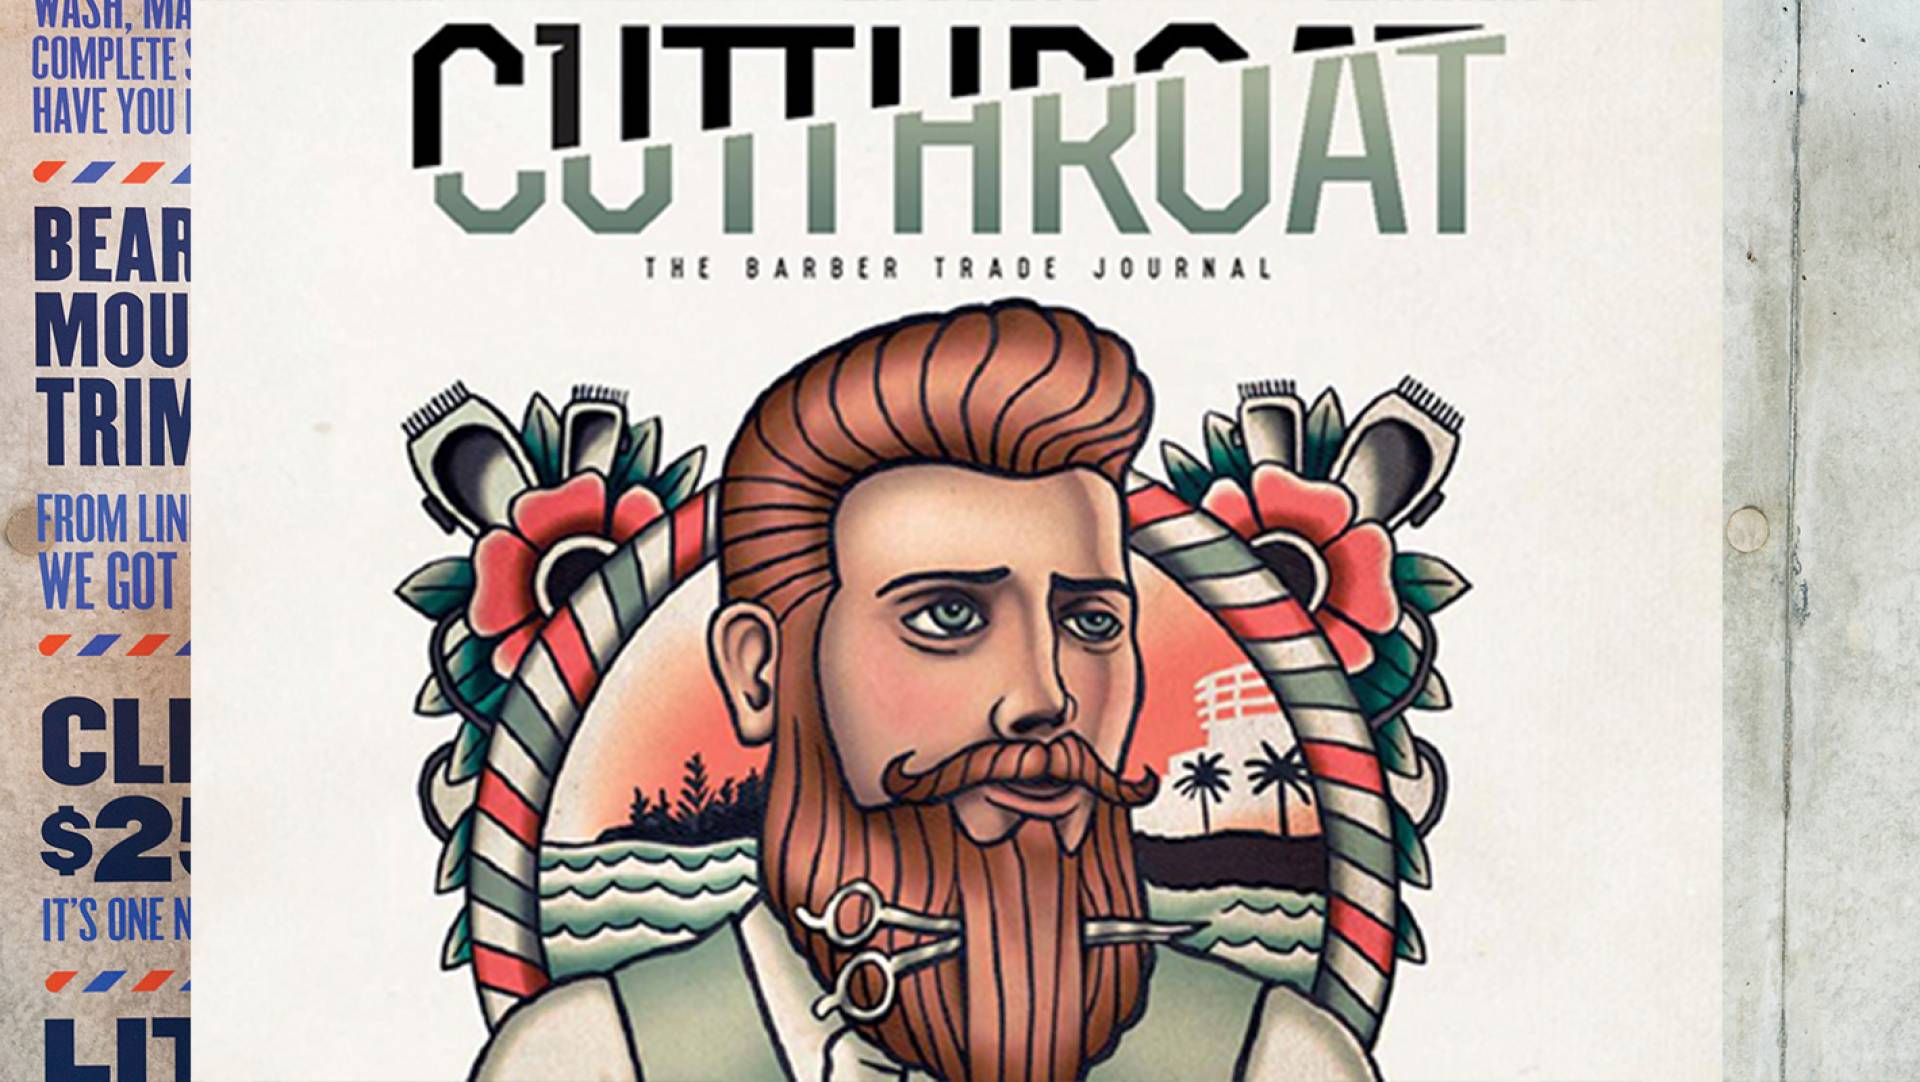 DAPPER GENTS BARBERSHOP GETS SHOWCASED IN CUTTHROAT BARBER JOURNAL